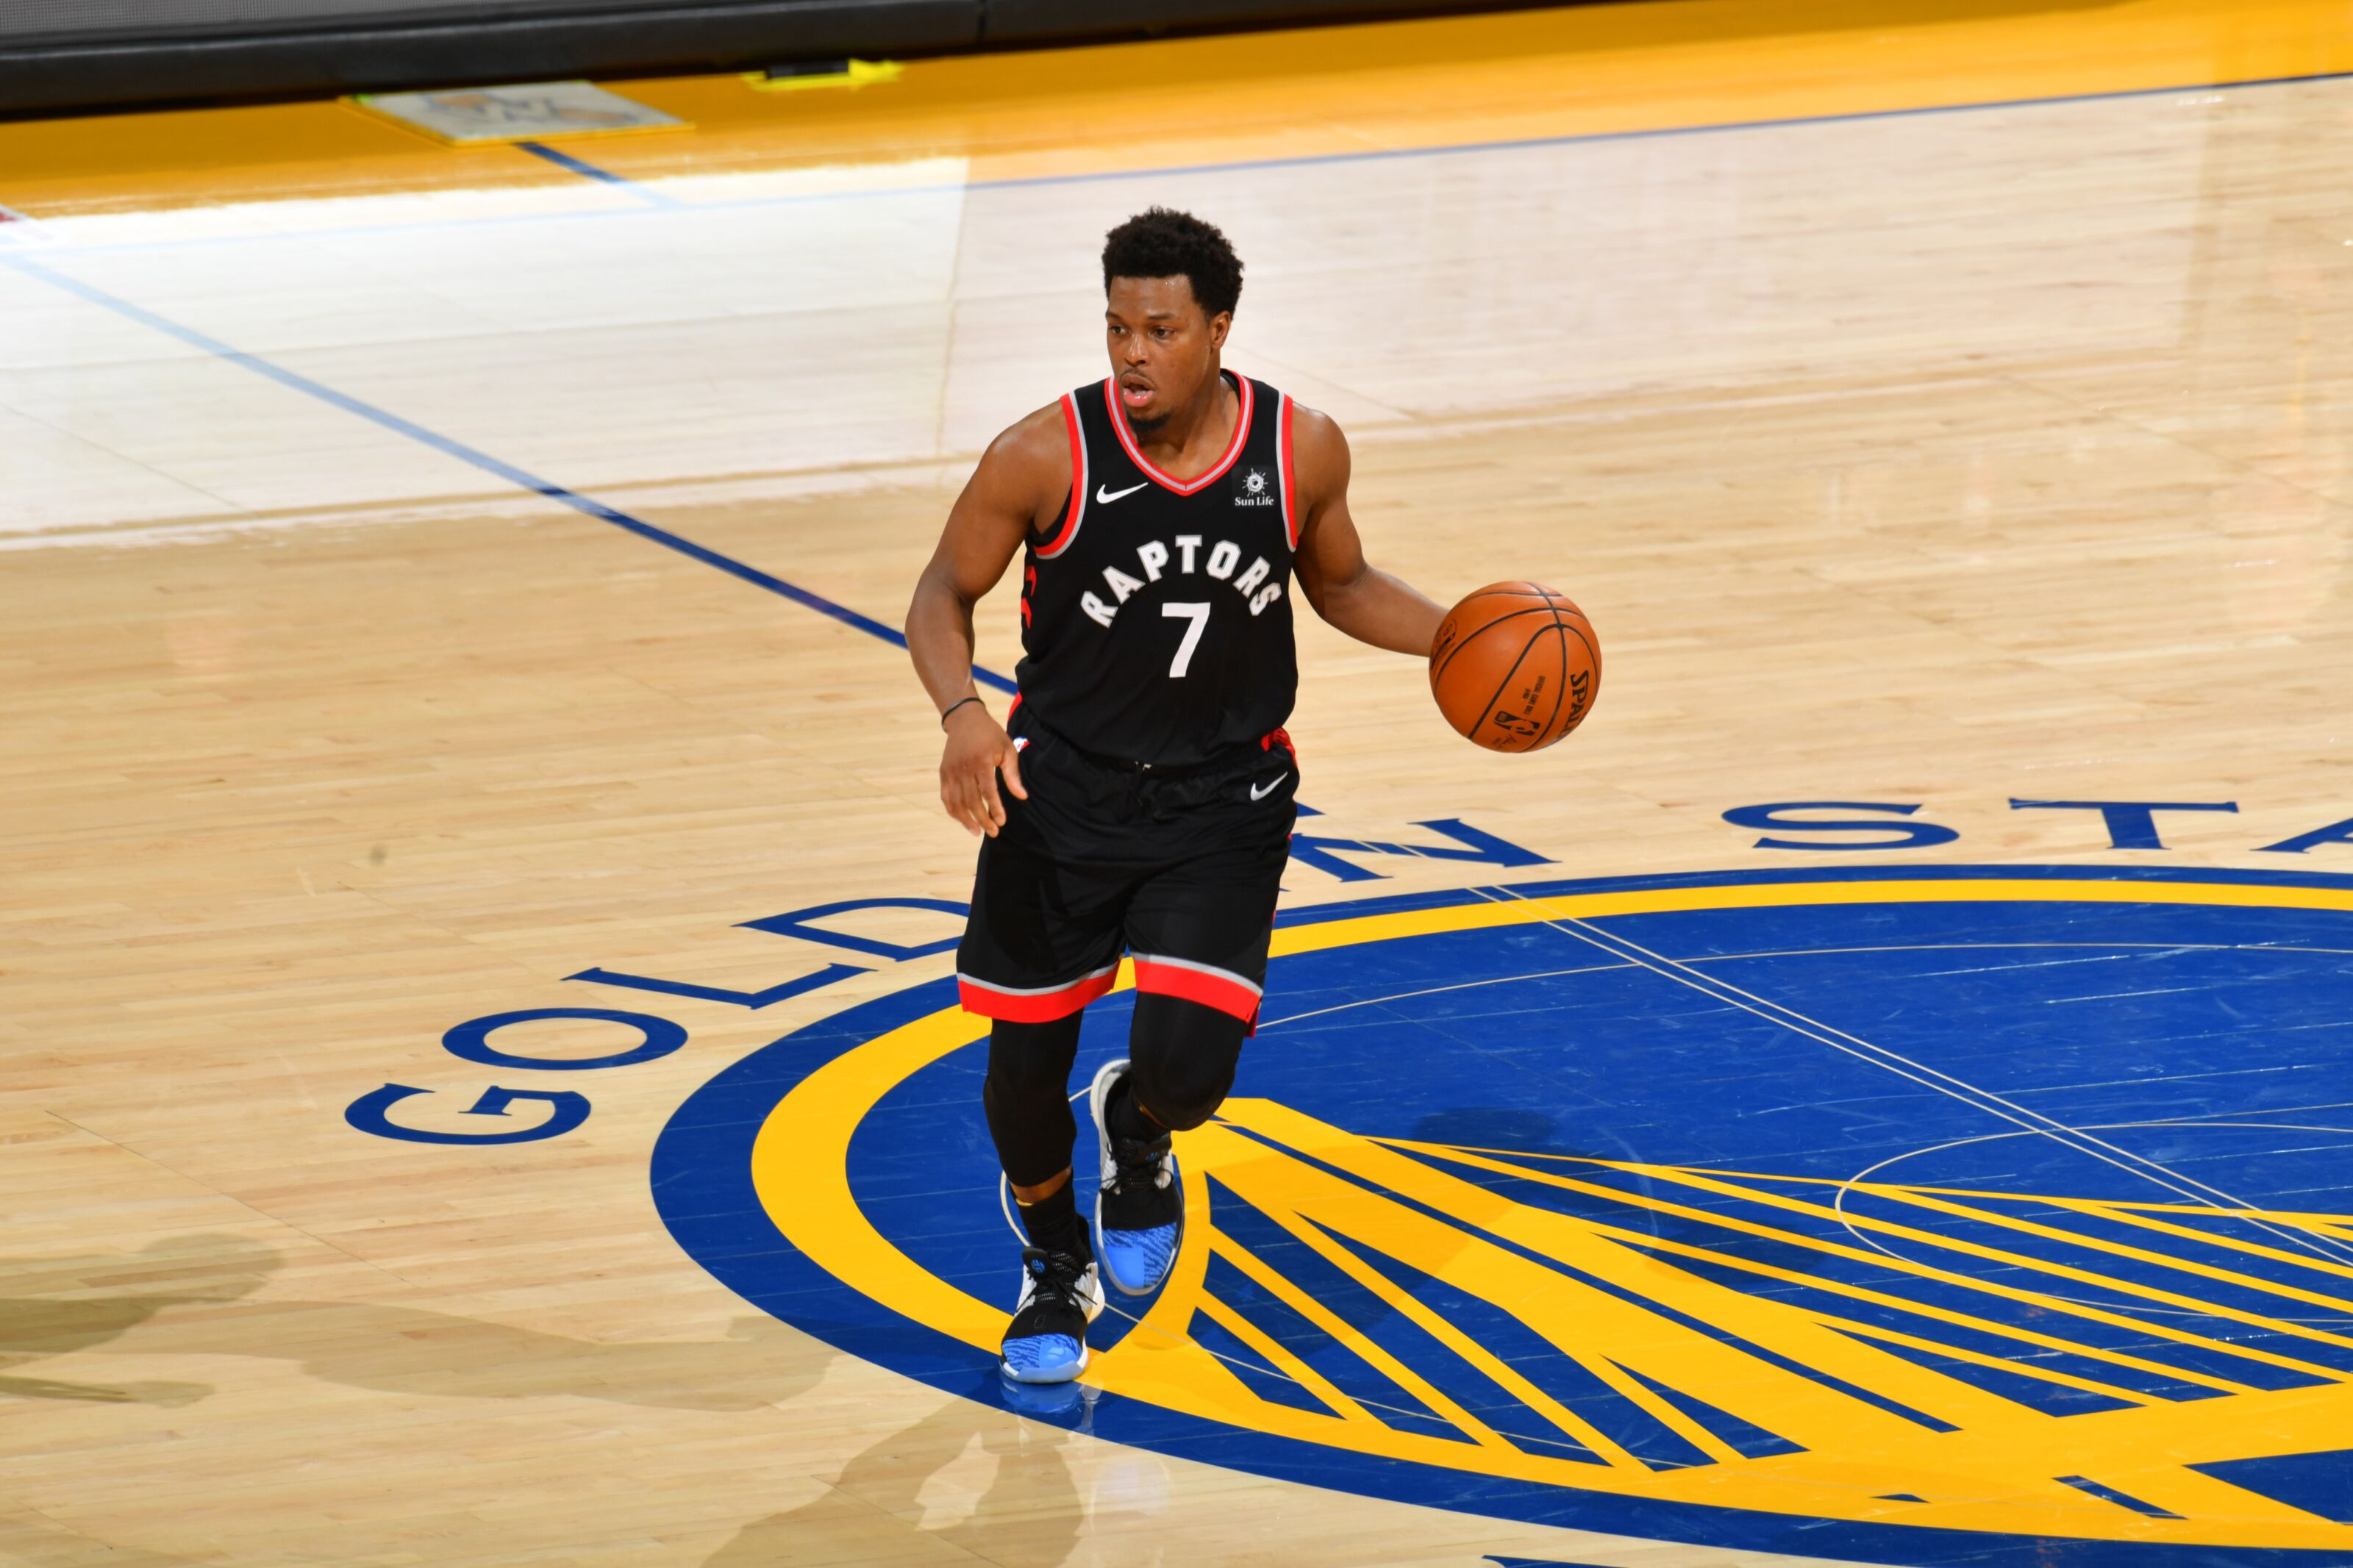 New York Knicks: Kyle Lowry contract continues to close 2020 free agency